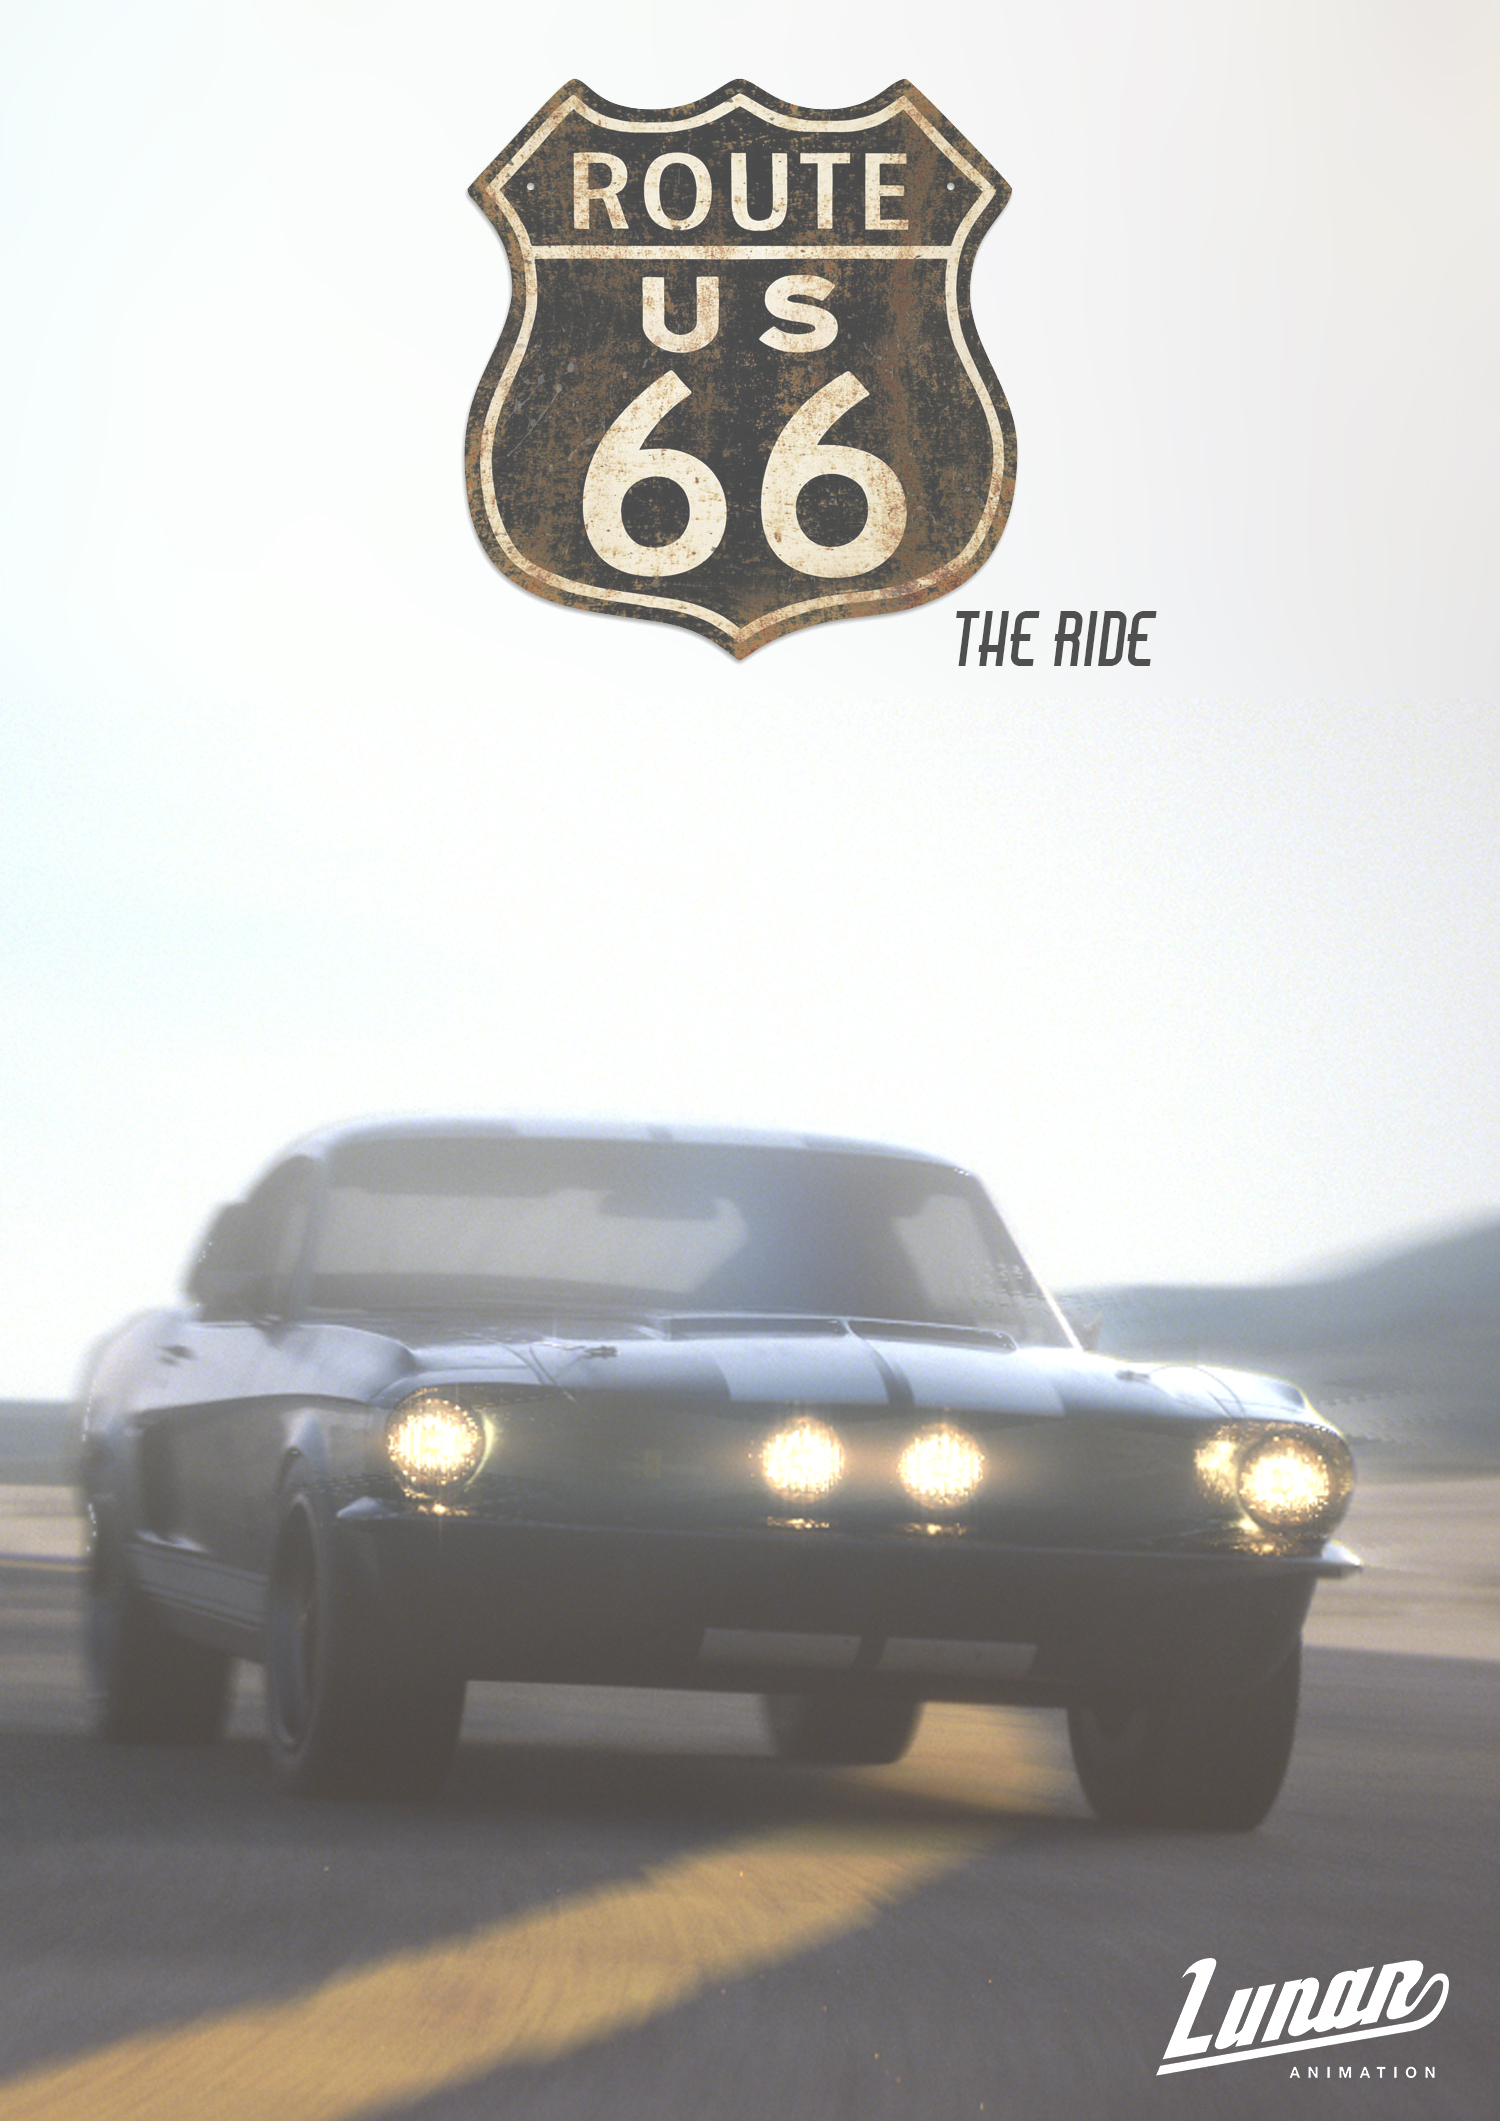 Lunar Animation - Route 66 The Ride Movie Poster